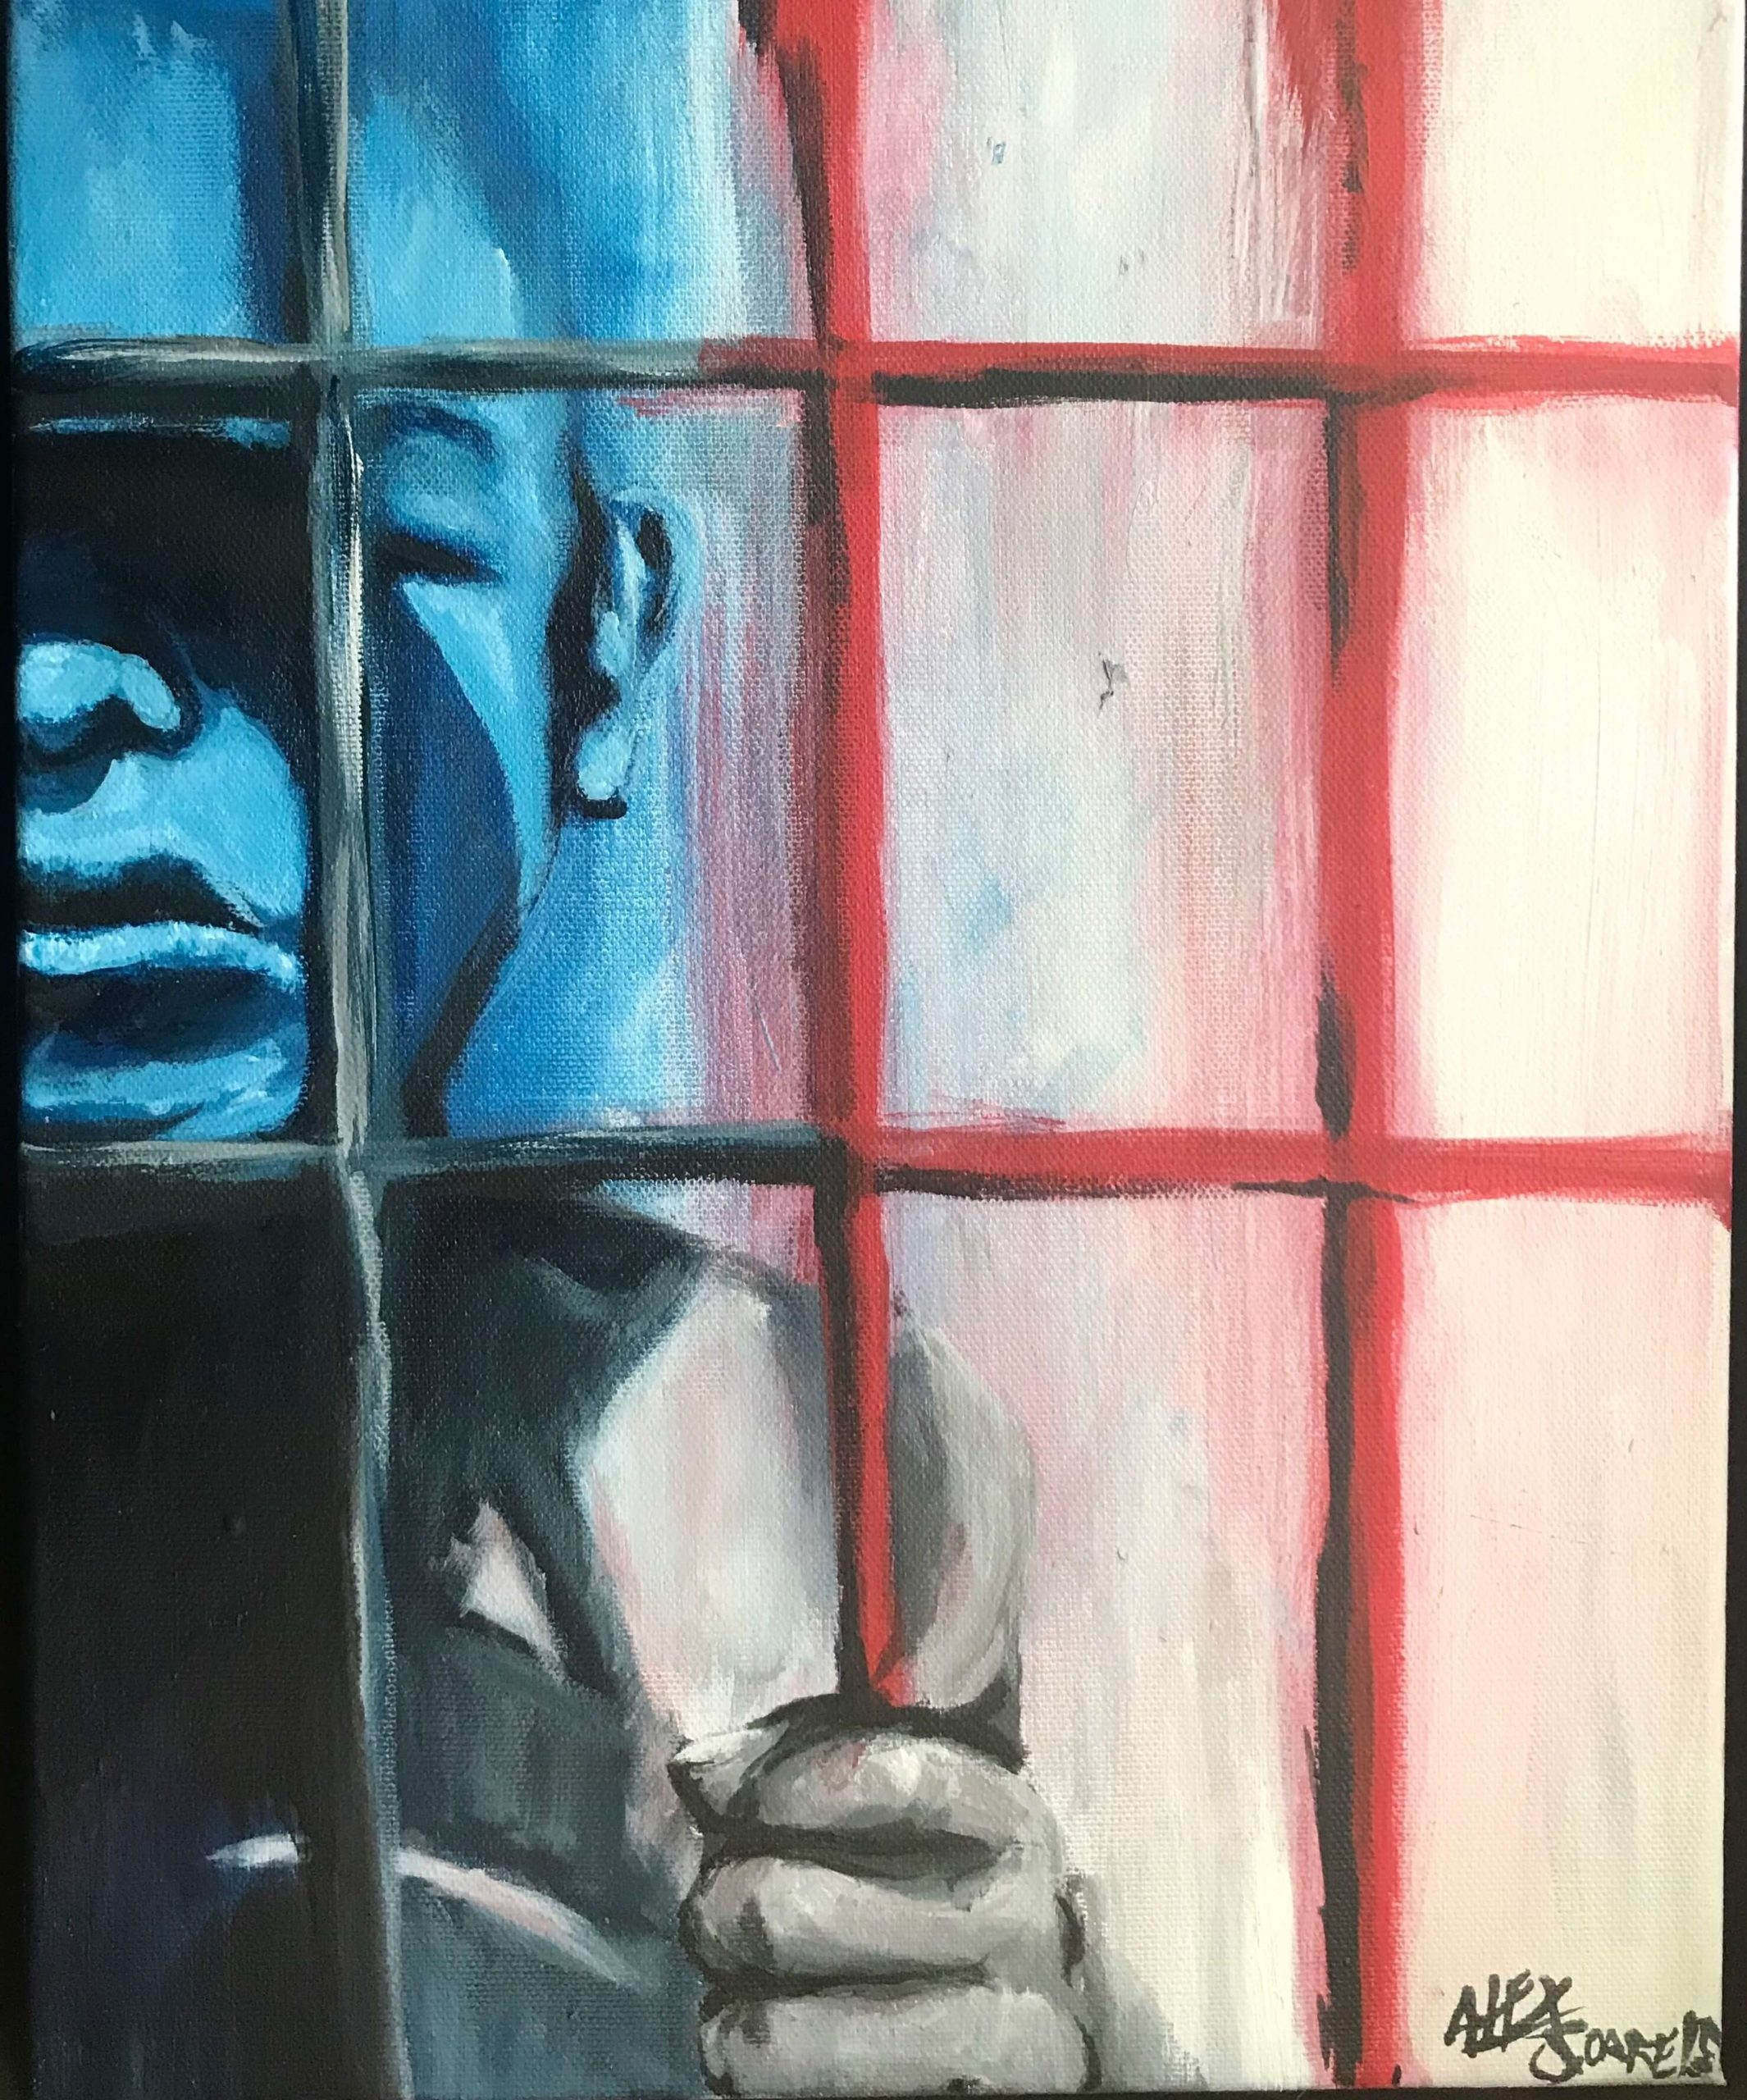 an illustration of a young boy behind bars